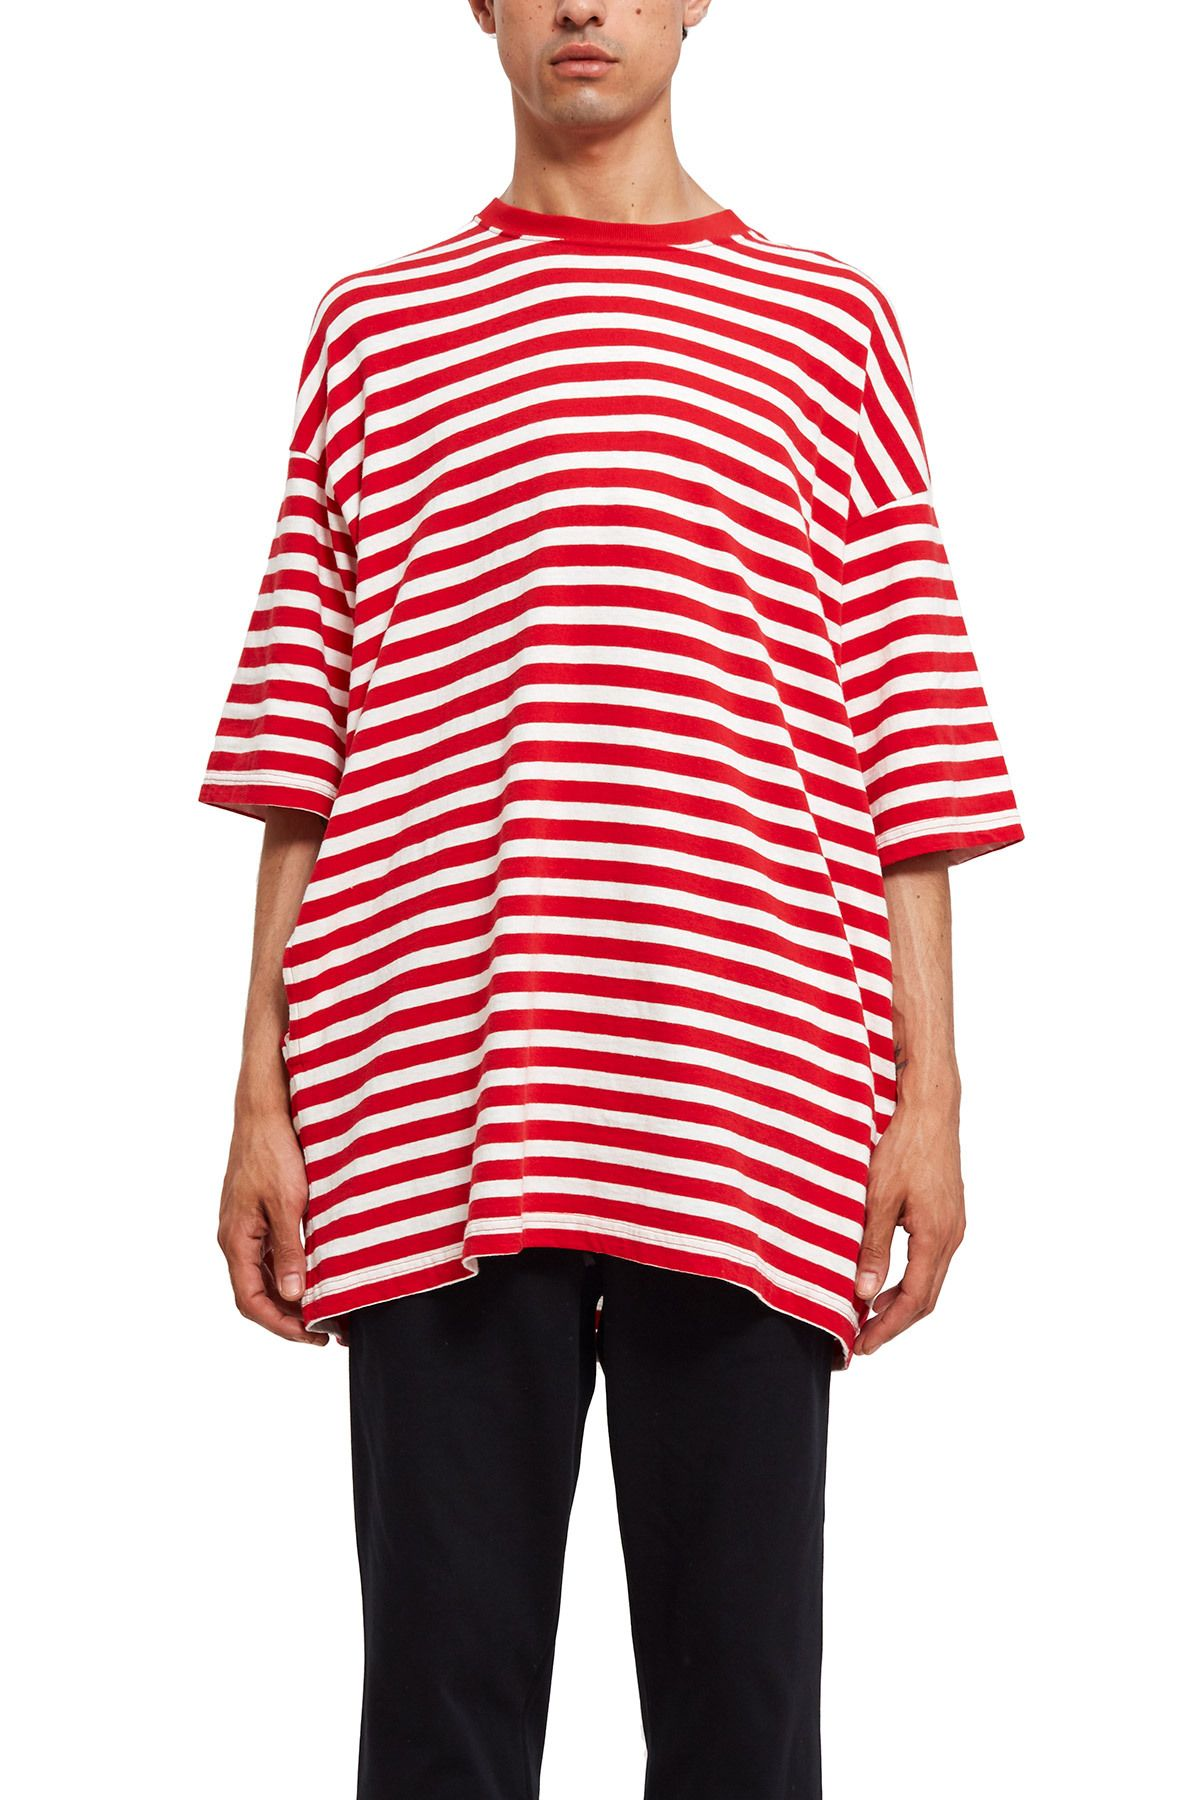 b253684b884 UNDERCOVER, Oversized Stripe Tee This oversized tee comes in a boxy ...